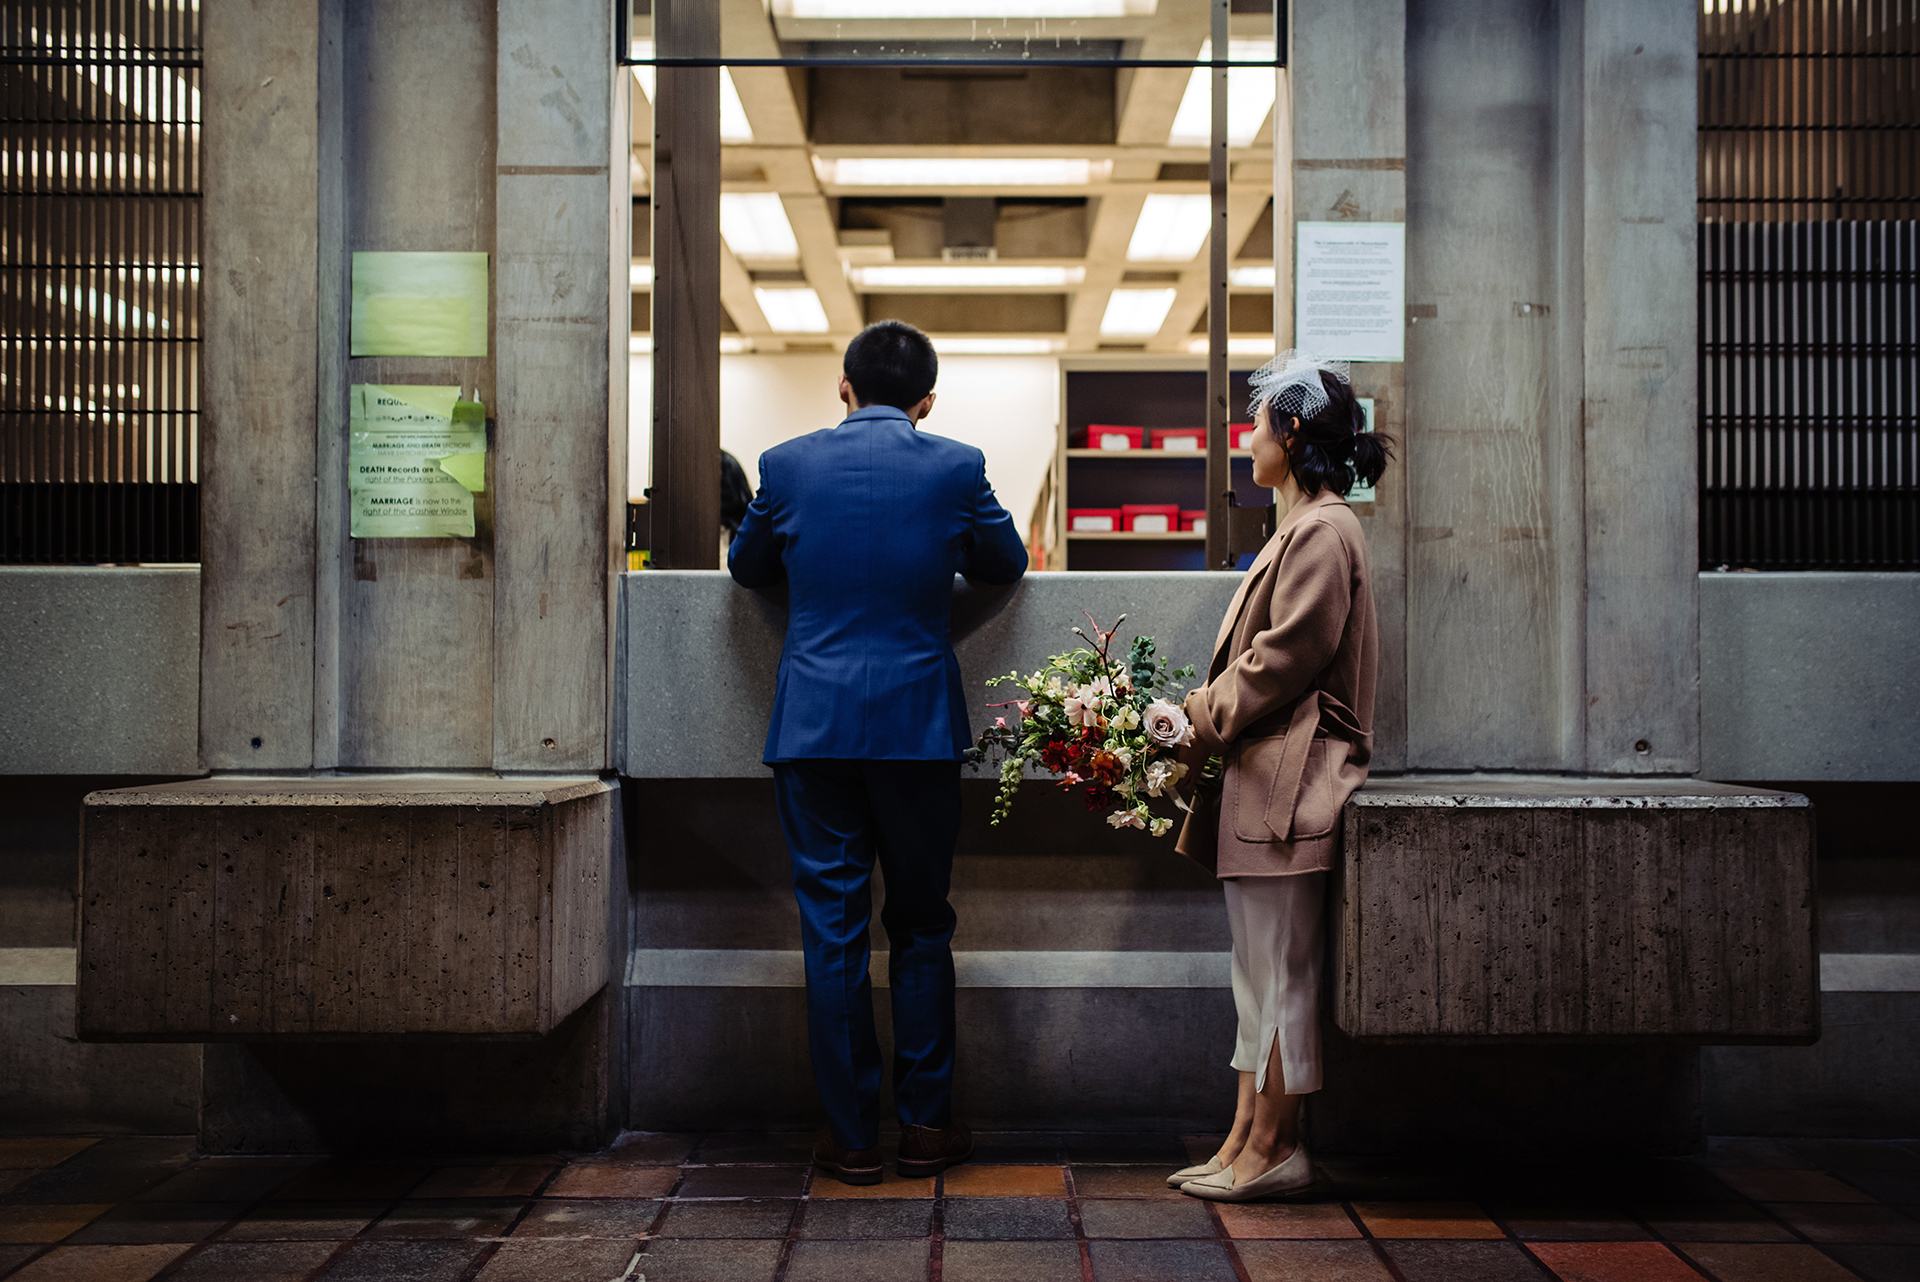 Images of a Boston City Hall Wedding Elopement   The bride-to-be looks on, holding her bouquet of flowers